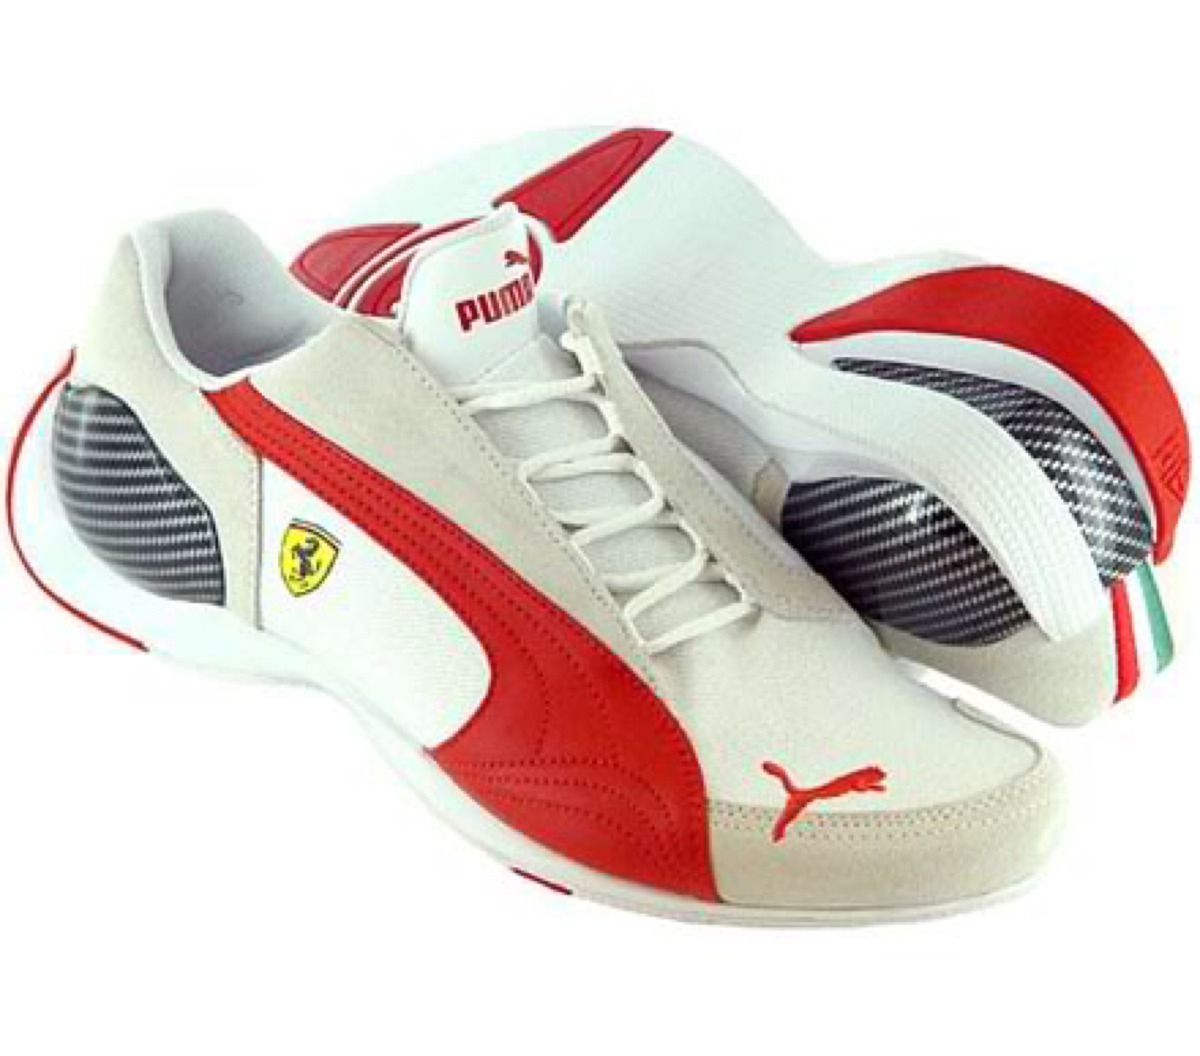 979983cd417 ... promo code for precio tenis puma ferrari 875a8 a8be1